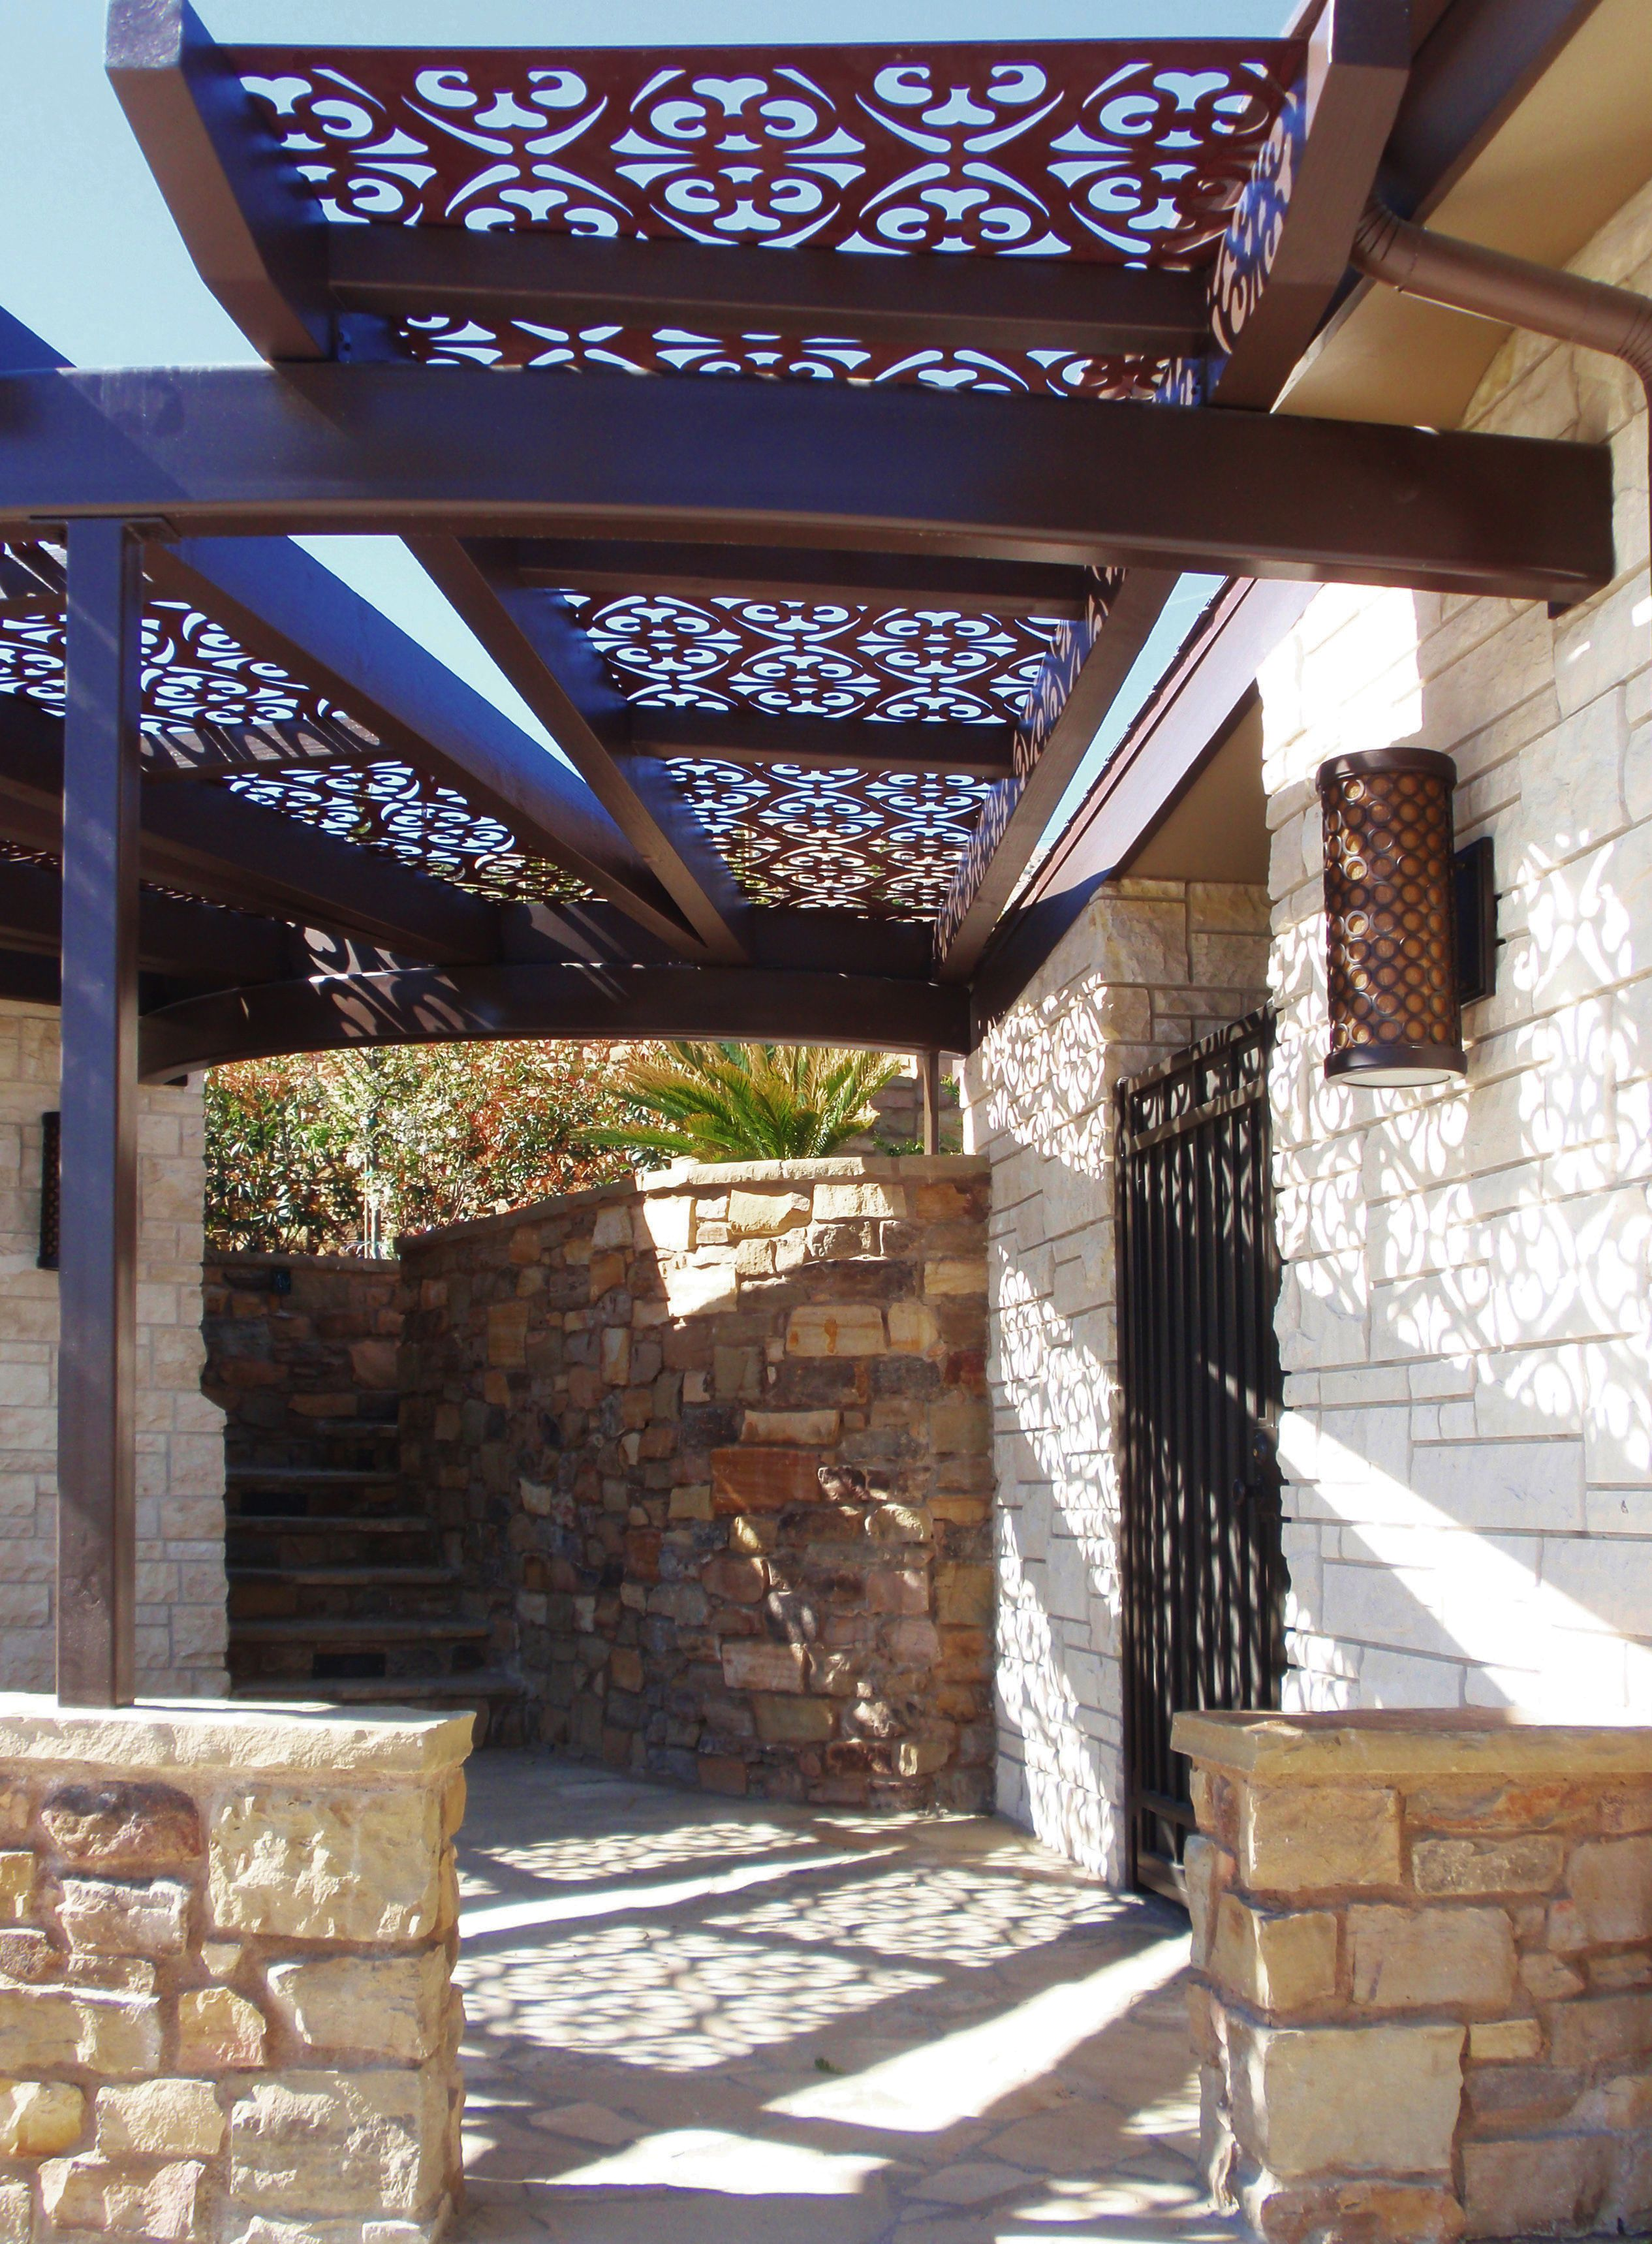 Balcony Shade Design: A Beautiful Patio Or Deck Shade In A Unique Backyard Or